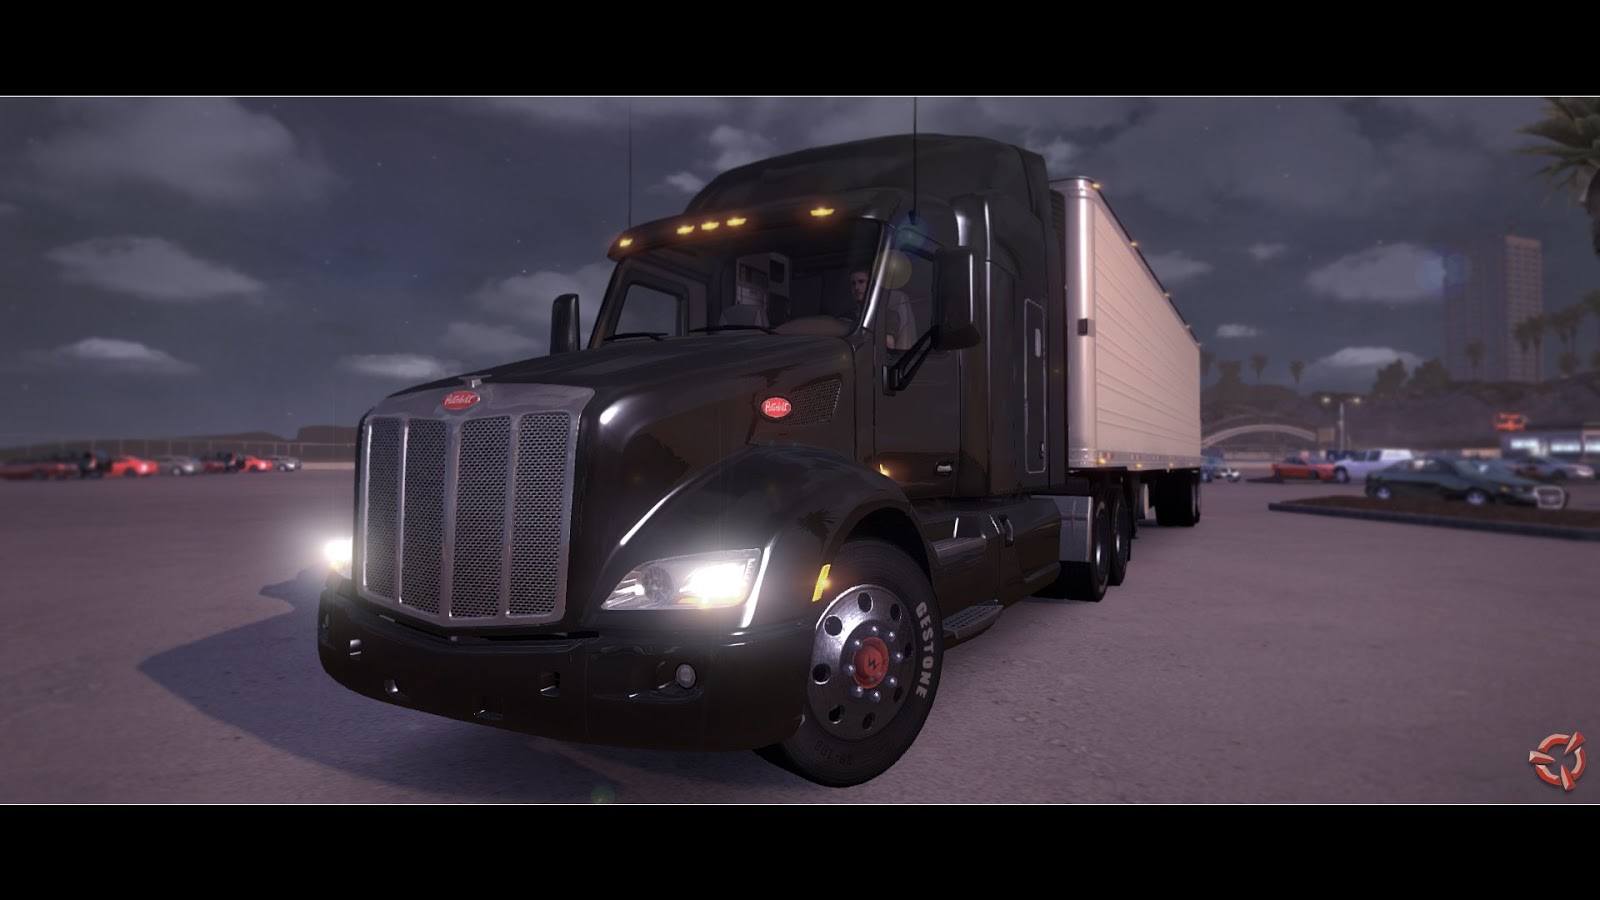 American Truck Simulator mods | ATS mods download - Page 370 of 370